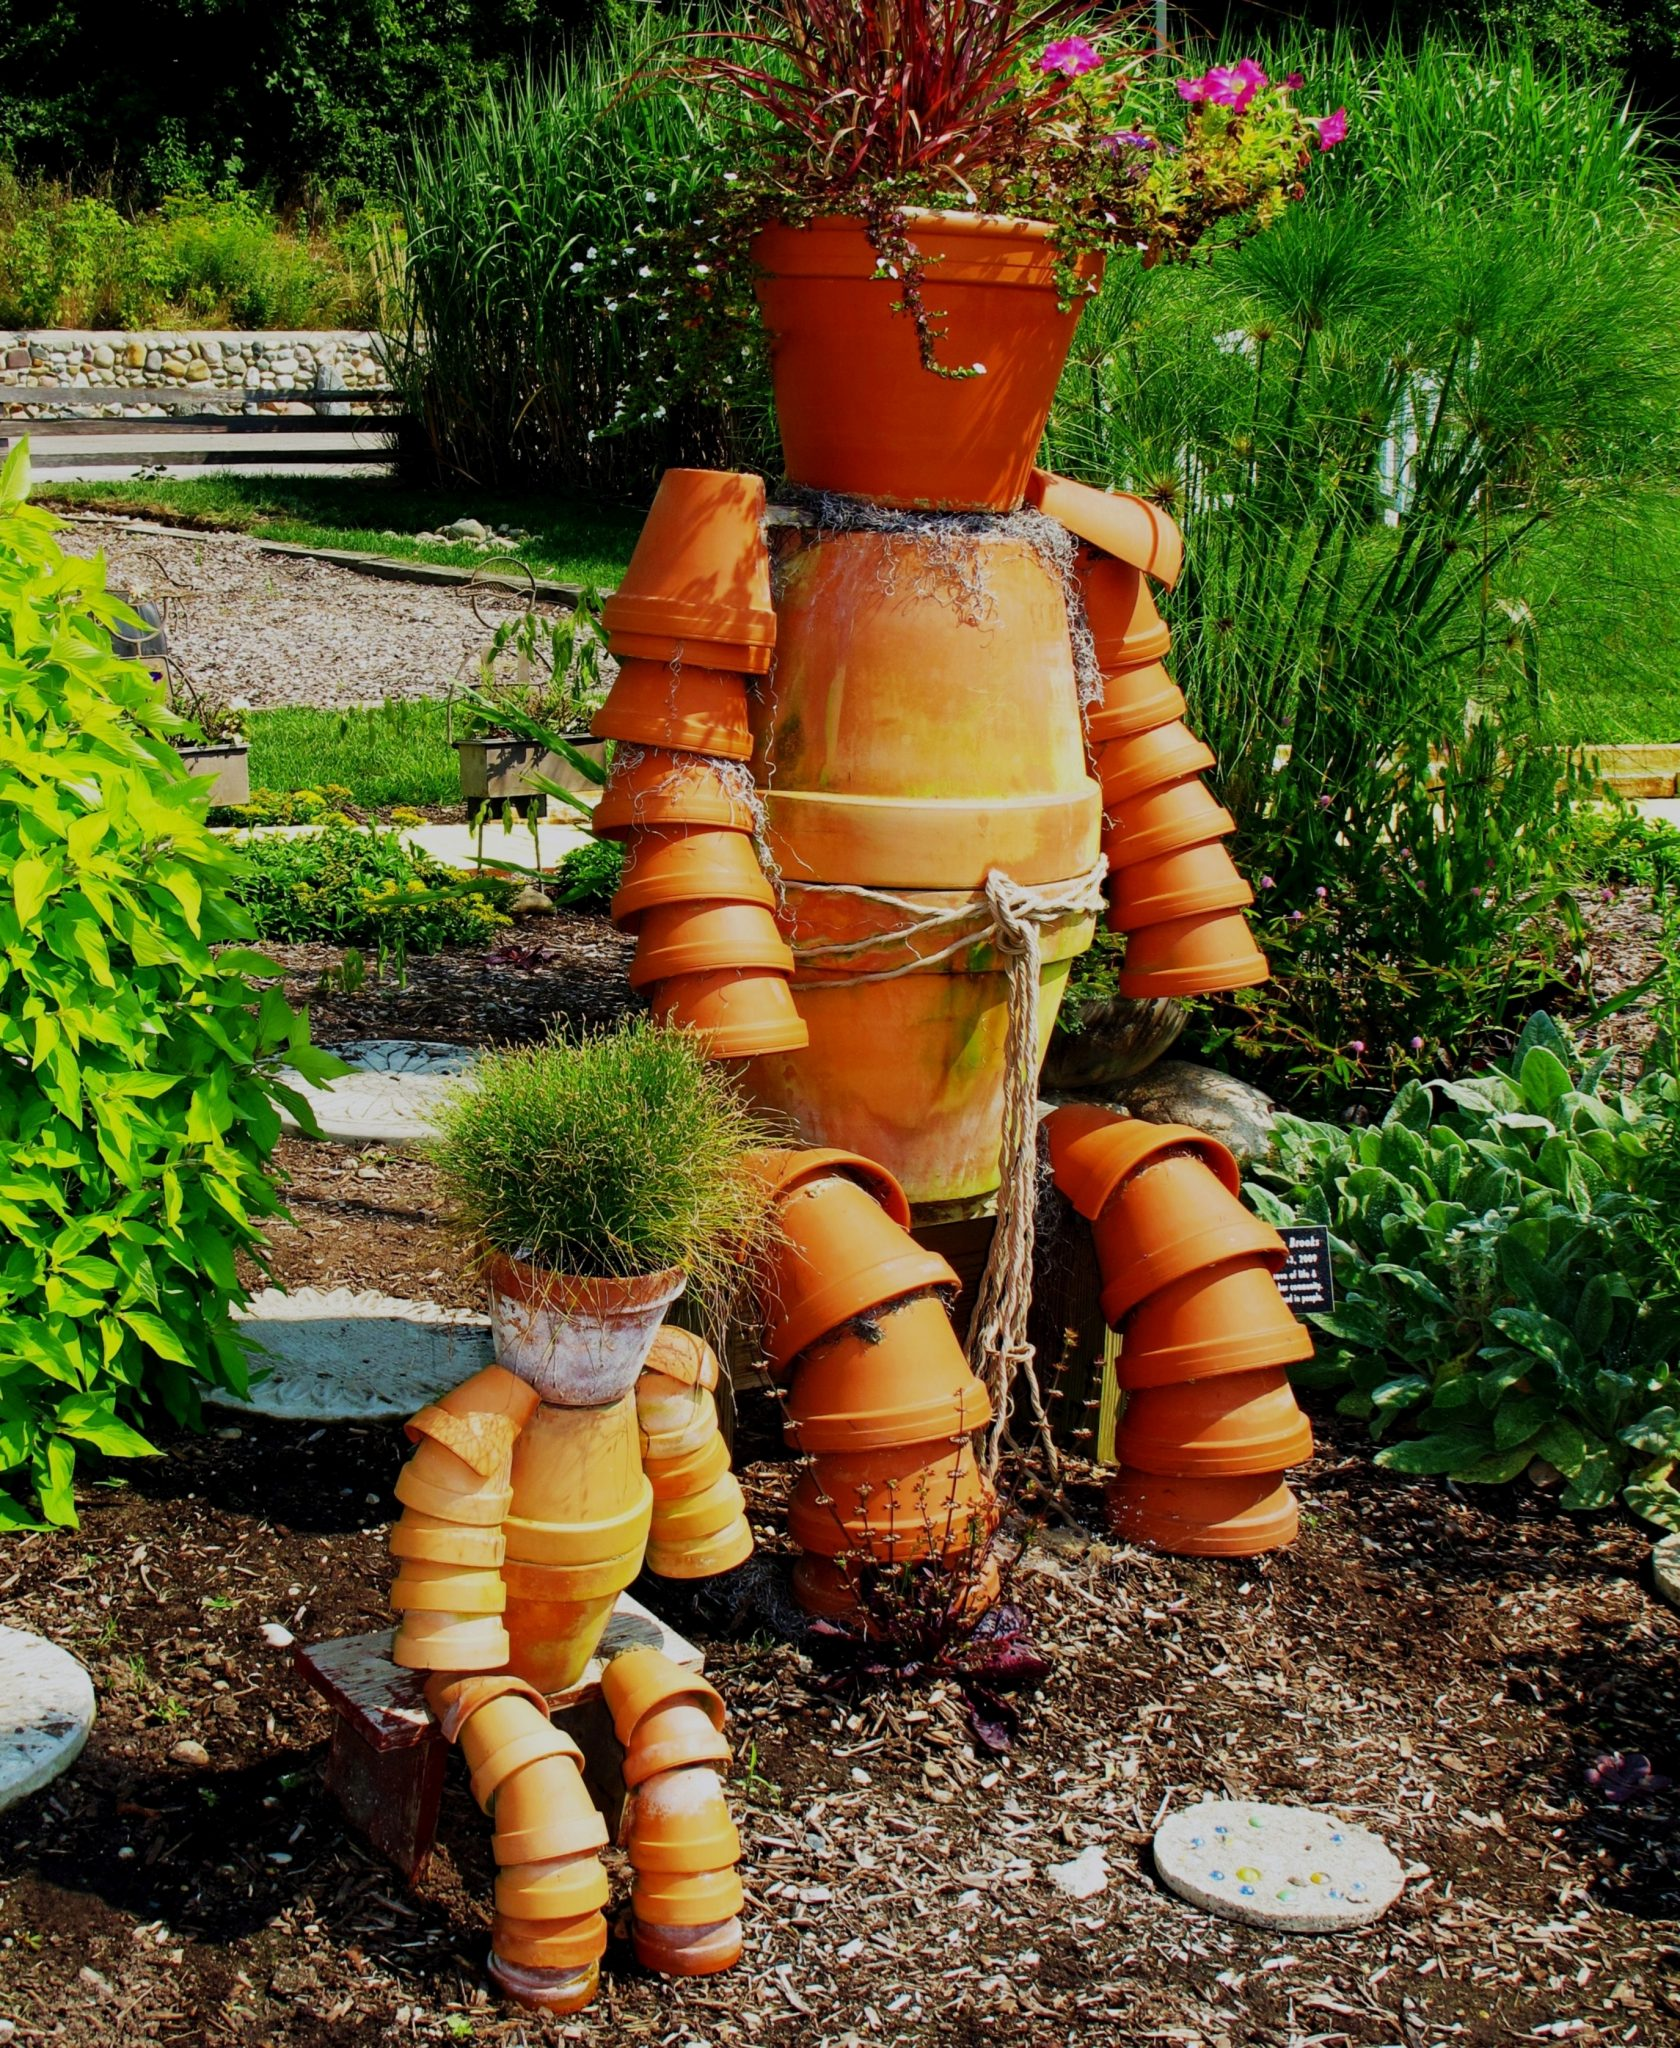 Garden Art from Repurposed Pots